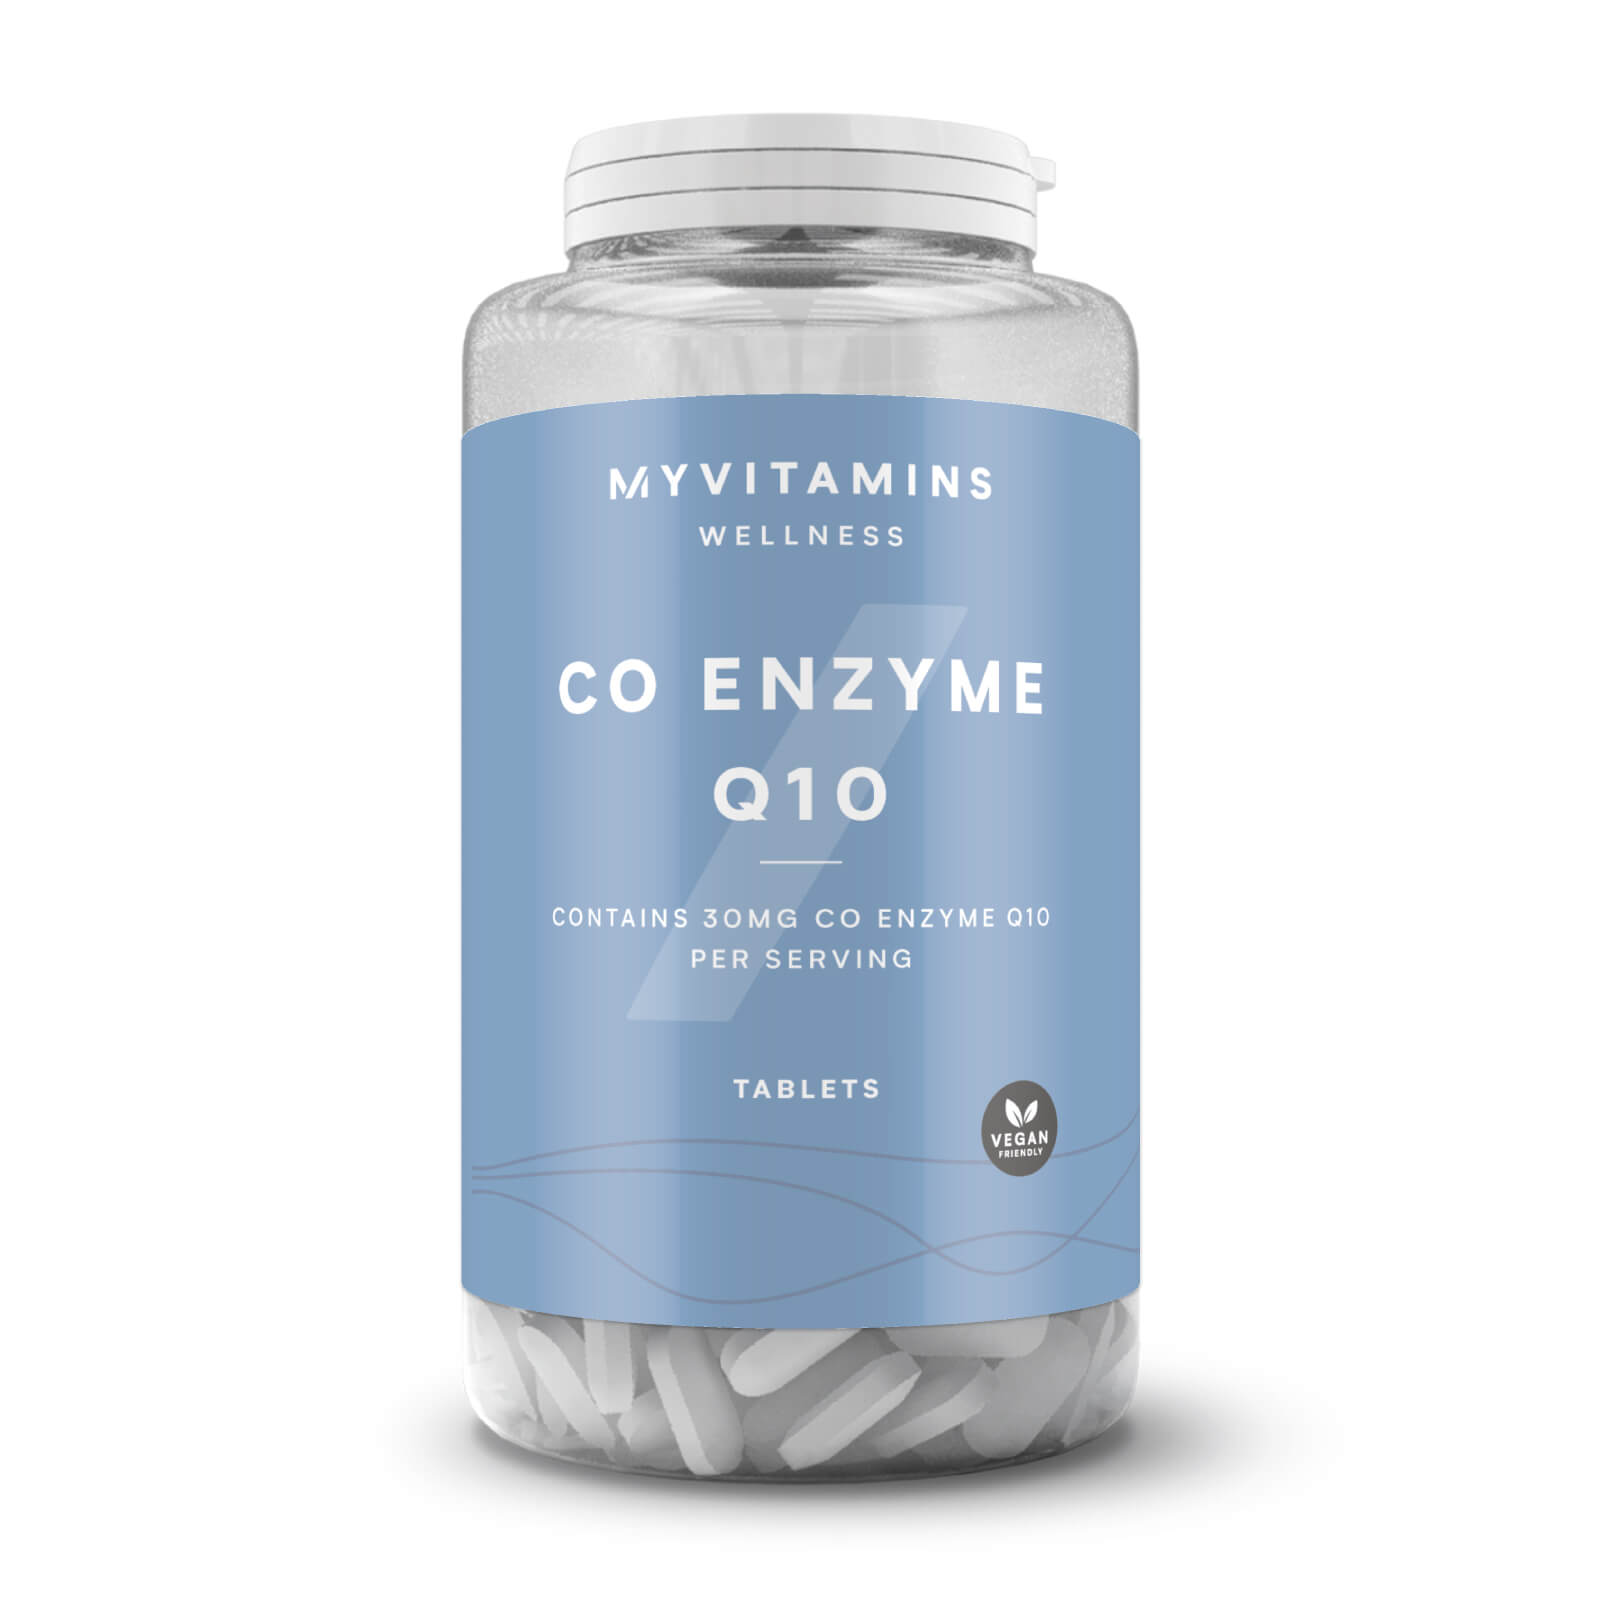 Myvitamins Co Enzyme Q10 - 90Tablets